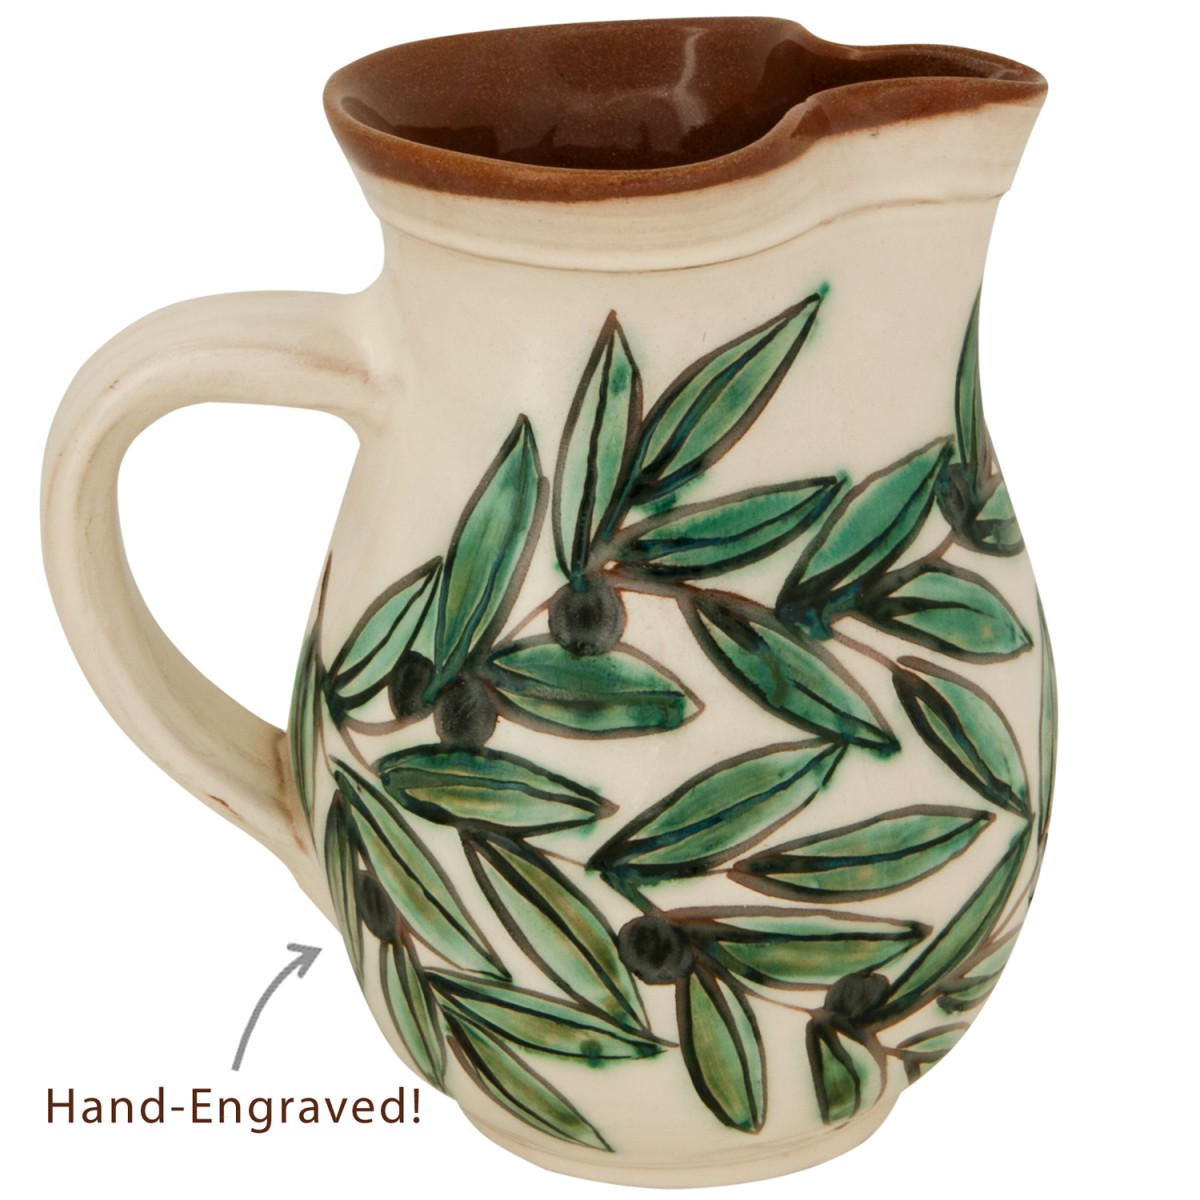 Pottery_Jugs_Hand_Engraved_Olives-1